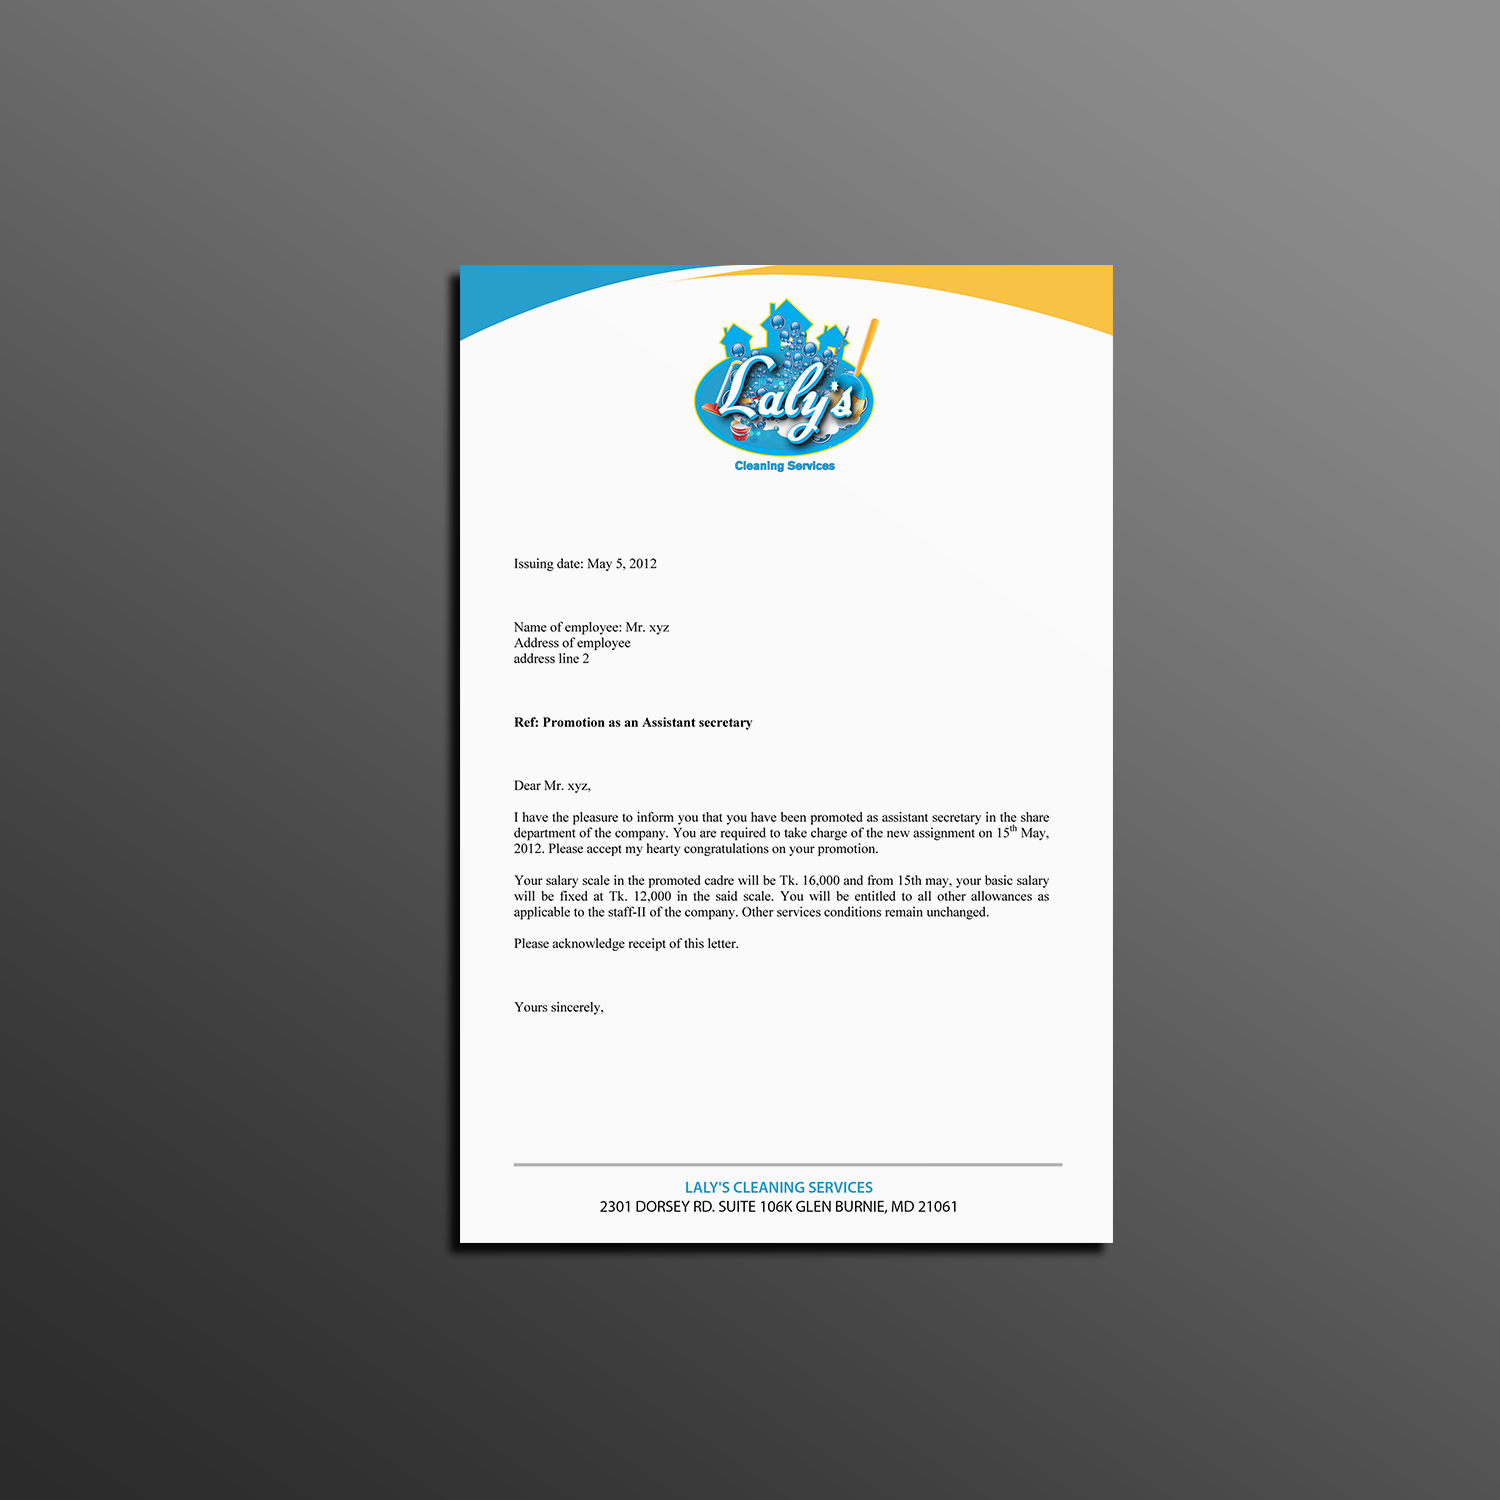 elegant playful house cleaning letterhead design for a company in united states design 18254740